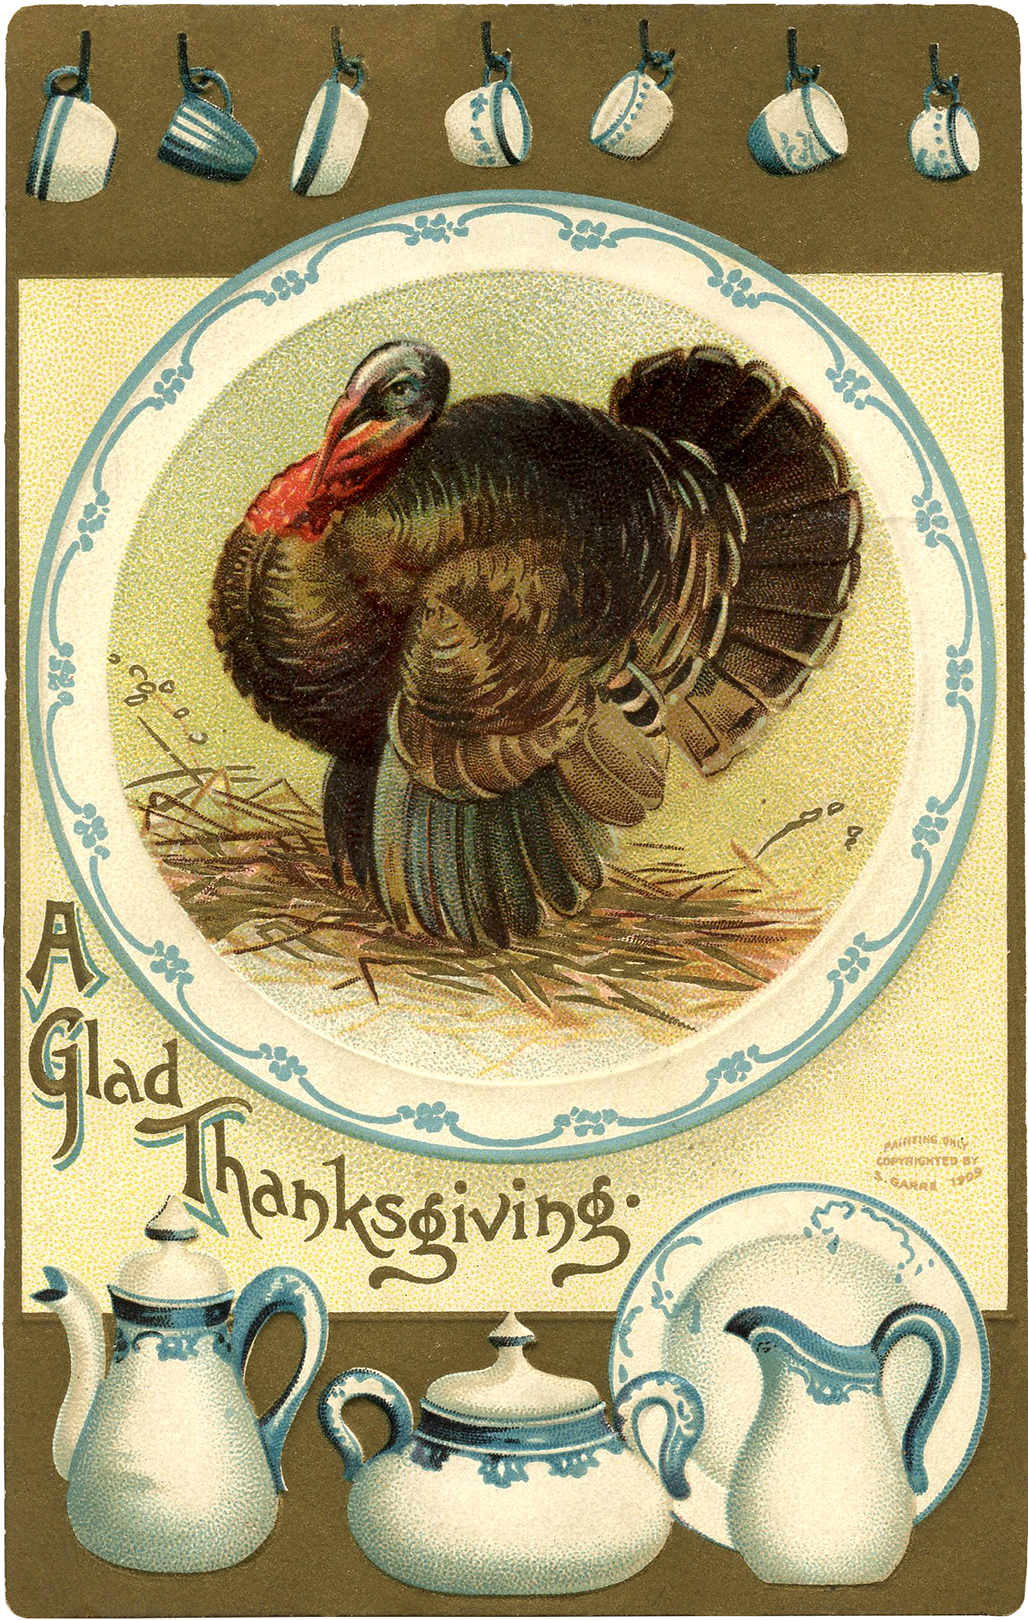 Fall Blessings Wallpaper Vintage Thanksgiving Turkey Image The Graphics Fairy